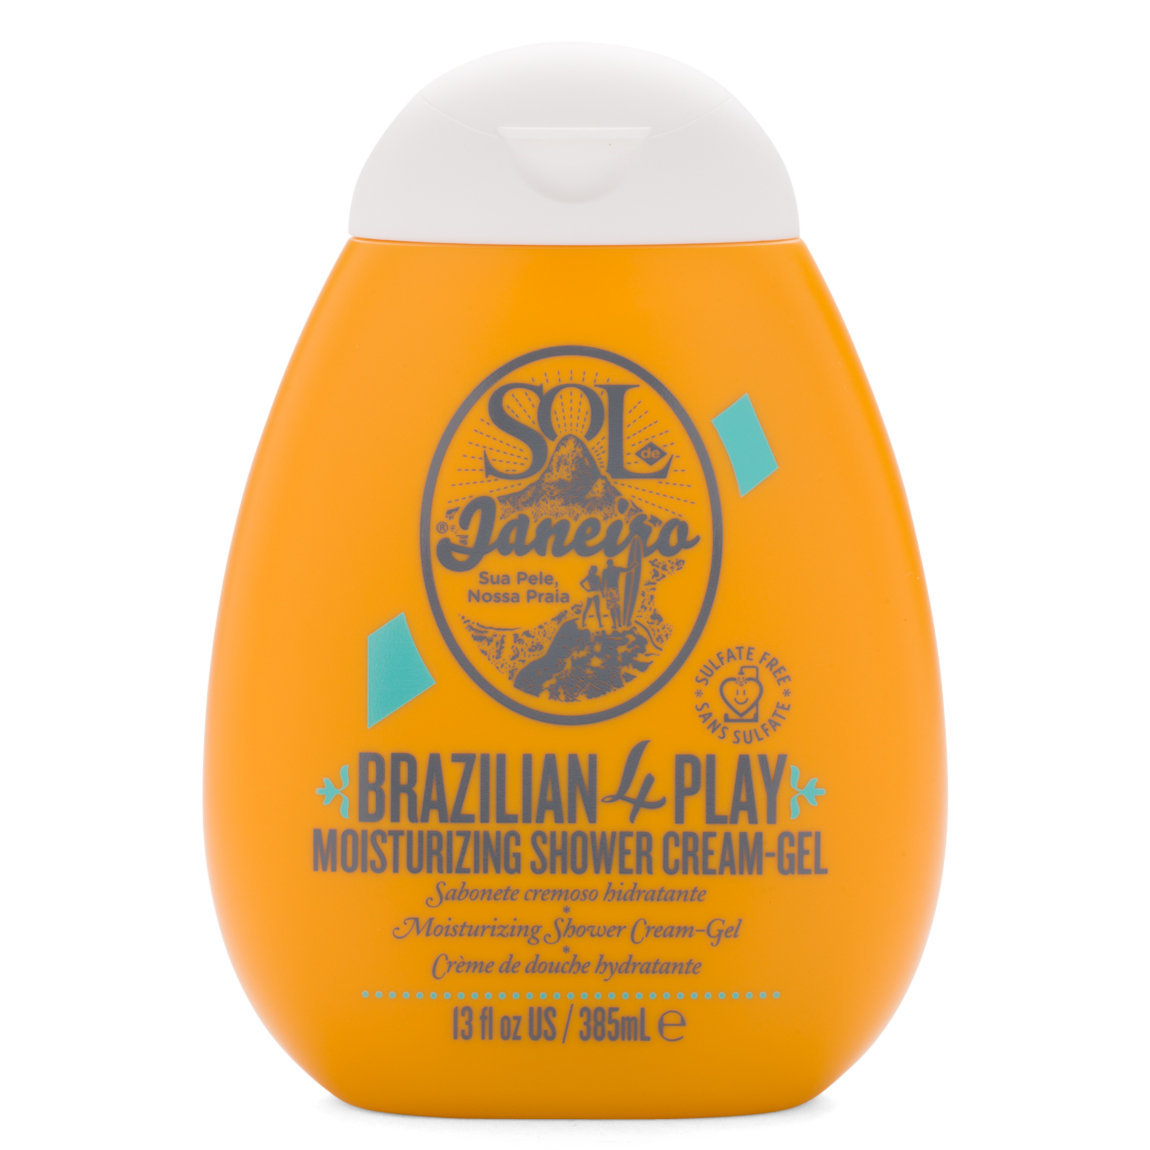 Sol de Janeiro Brazilian 4 Play Moisturizing Shower Cream-Gel 13 fl oz alternative view 1.